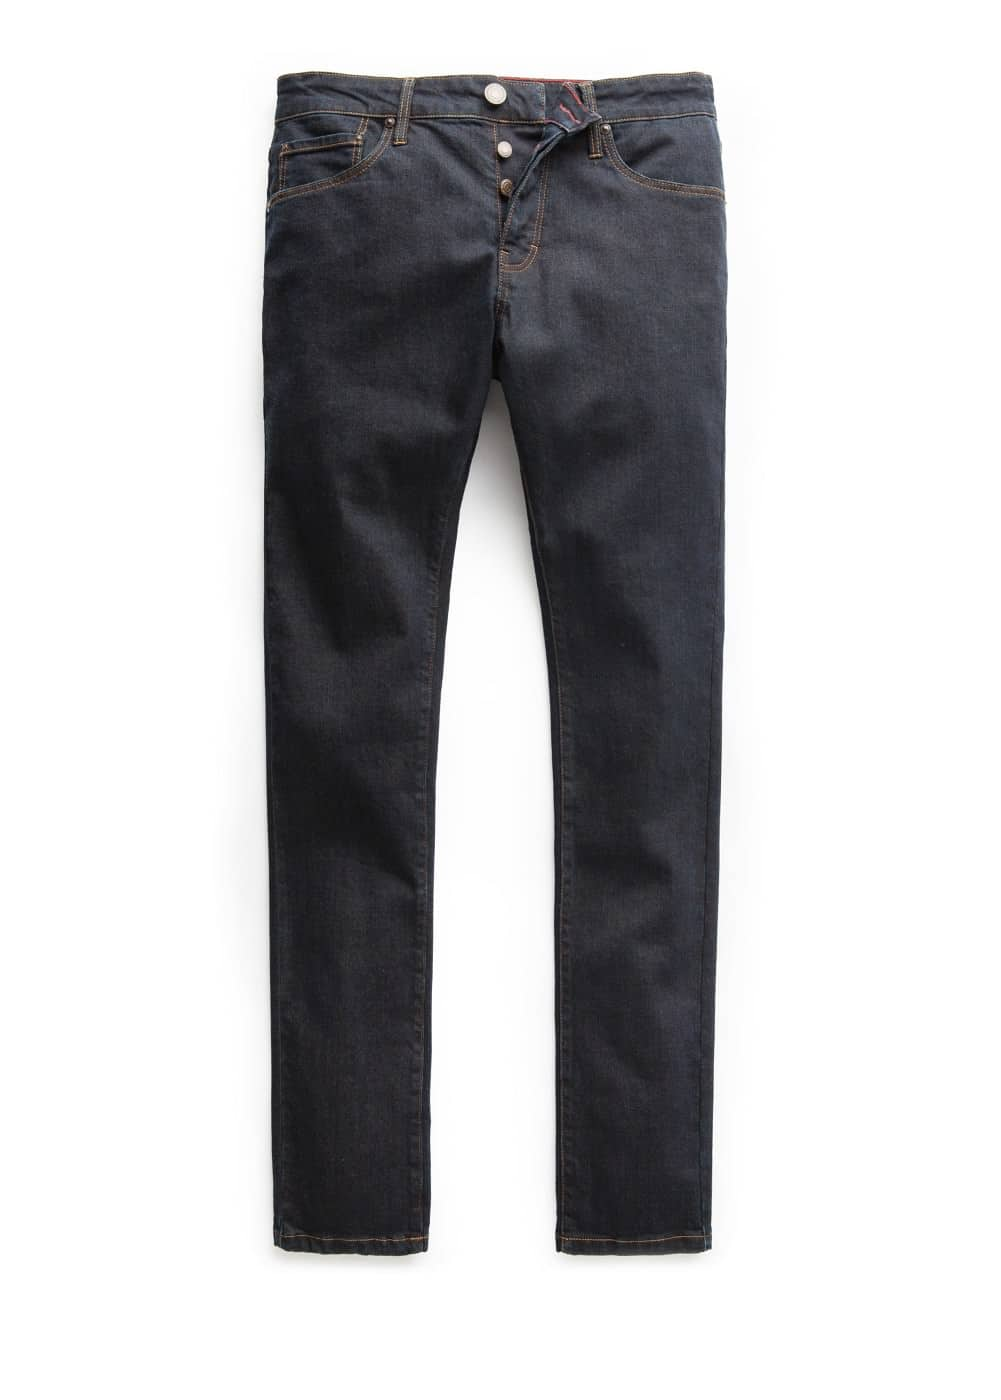 Jeans Tim slim-fit oscuros